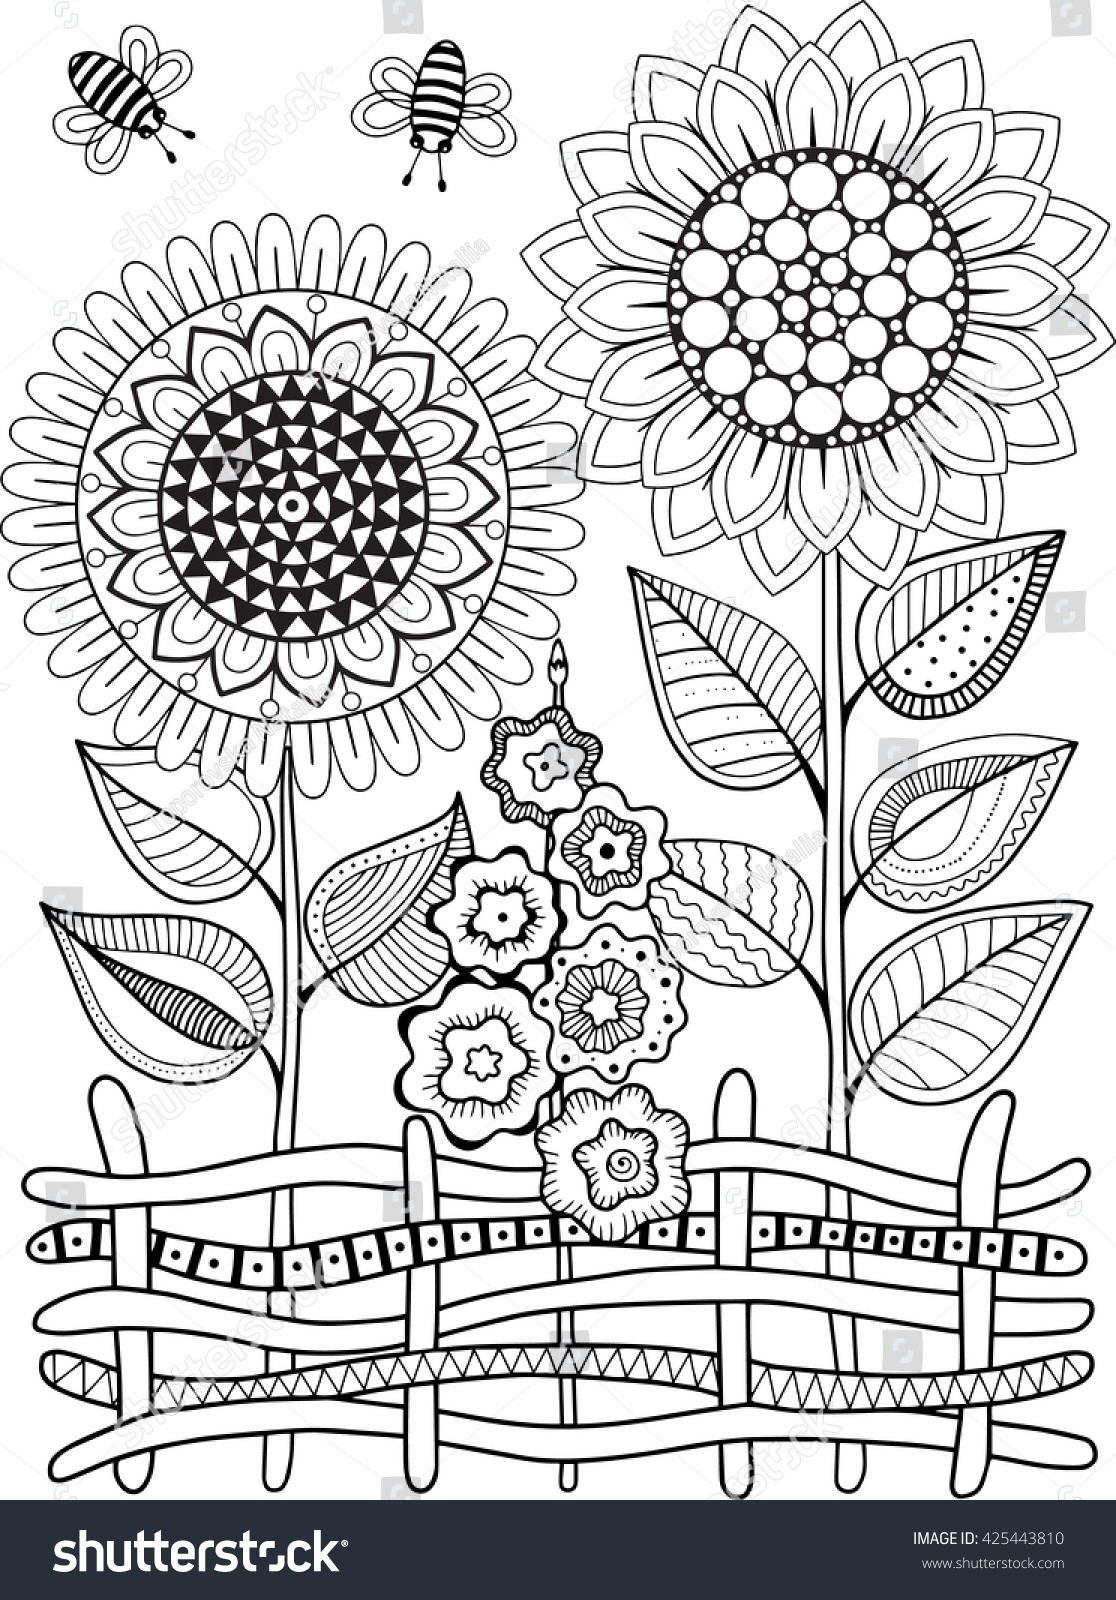 Coloring Pictures Of Sunflowers. Vector doodle sunflowers  Coloring book for adult Summer flowers Flowerbed Doodle Sunflowers Book Adult Stock